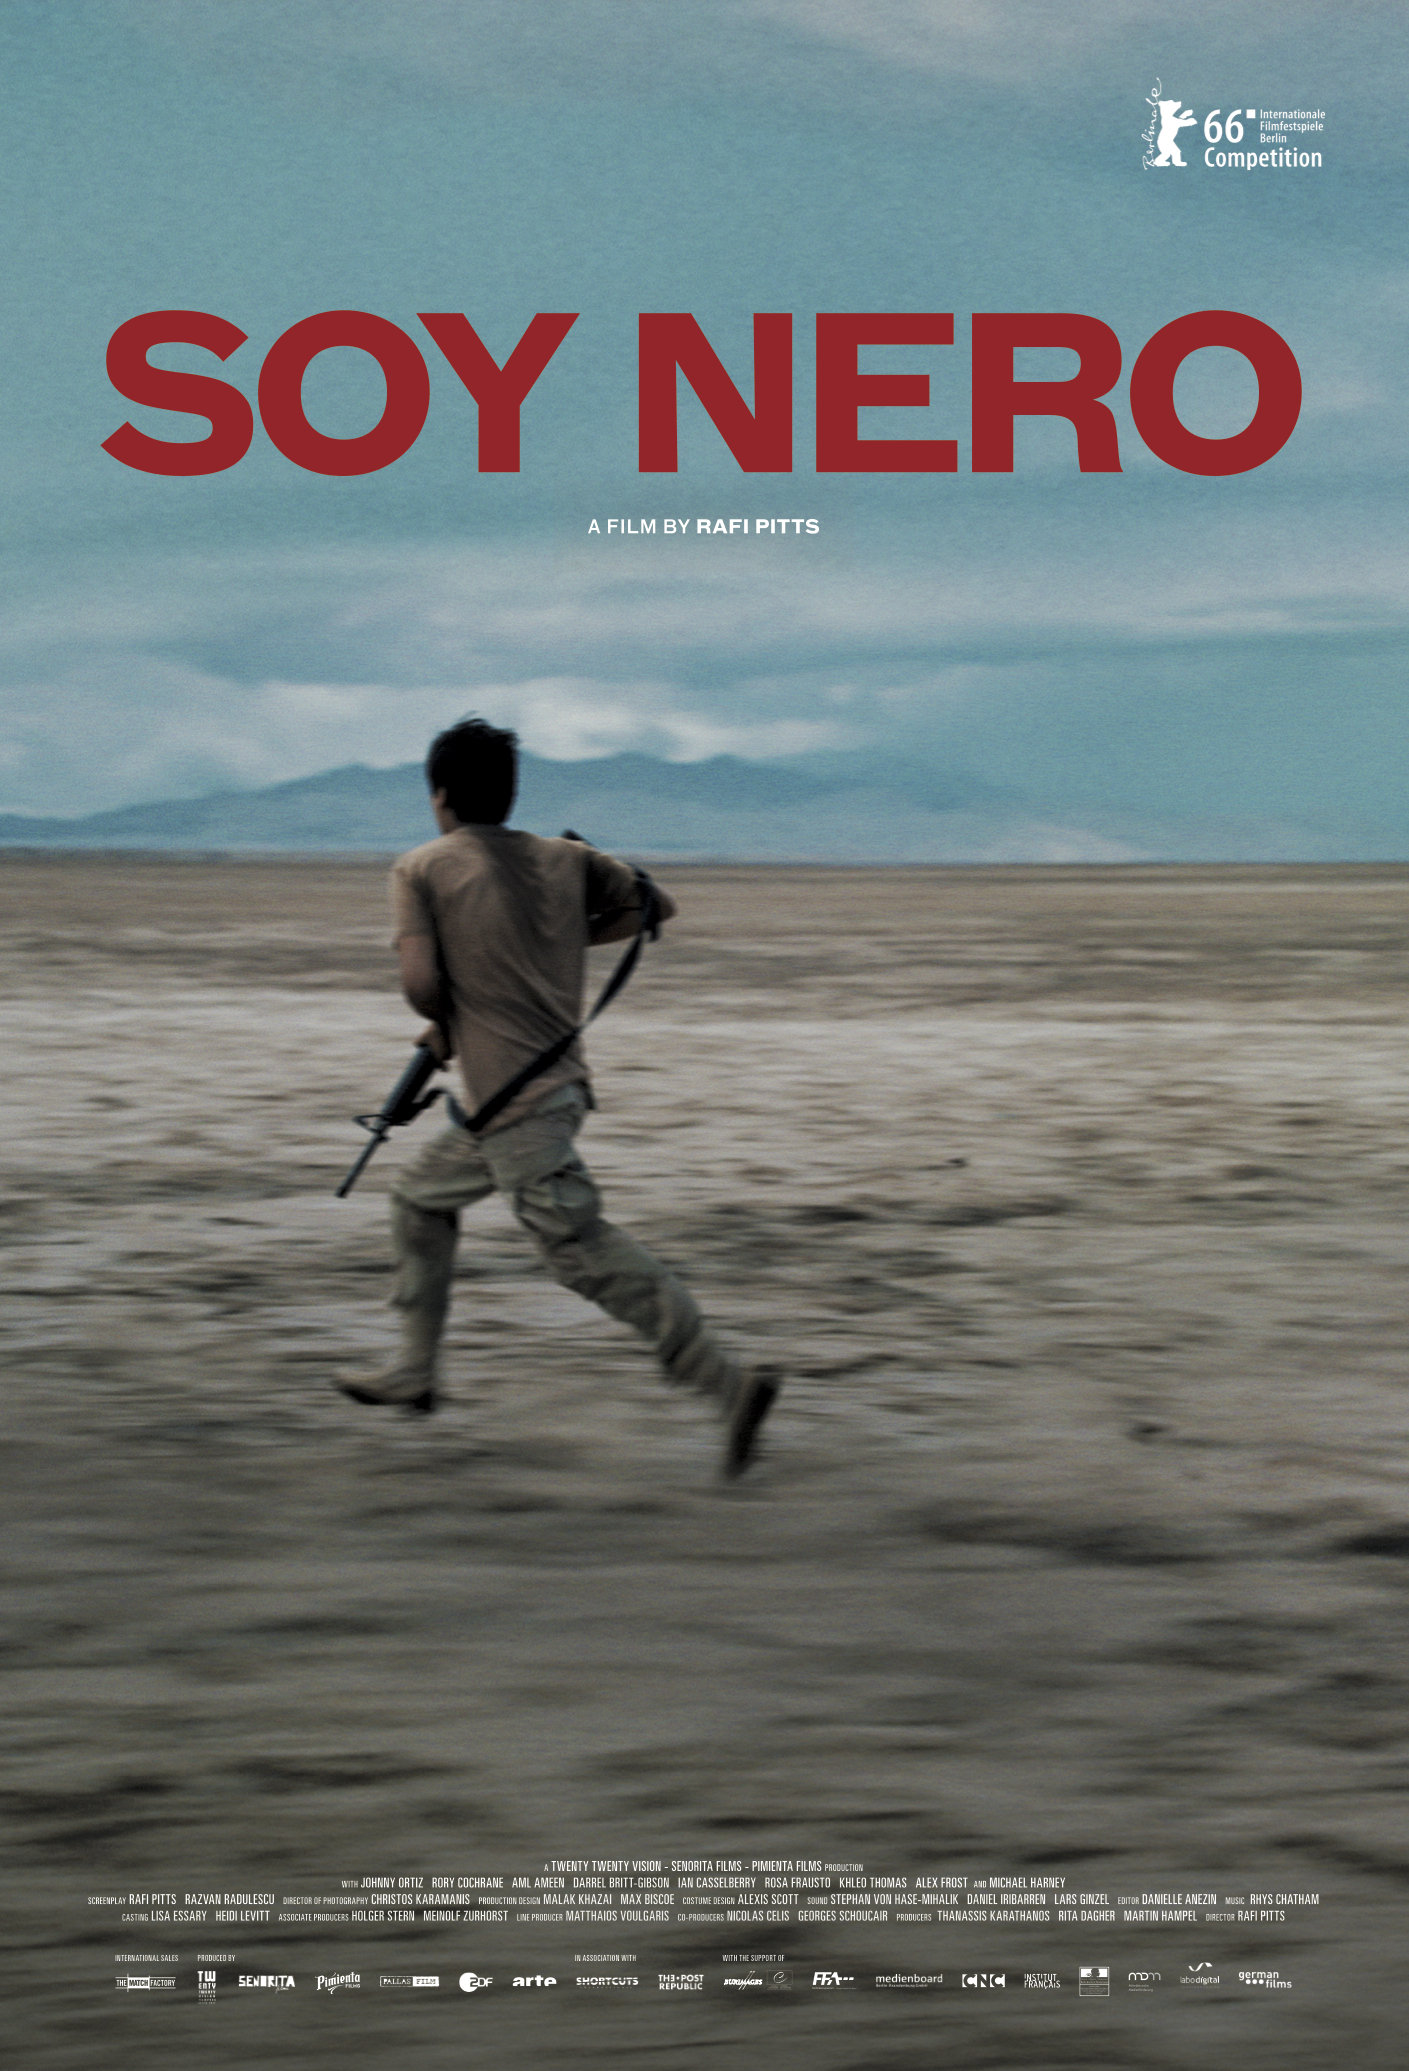 <p>Nero, a deported Mexican, returns illegally to the U.S in search of his identity. He joins the U.S army as a Green card soldier, a shortcut to citizenship. Lost in a maze, Nero fights to obtain his nationality.</p>